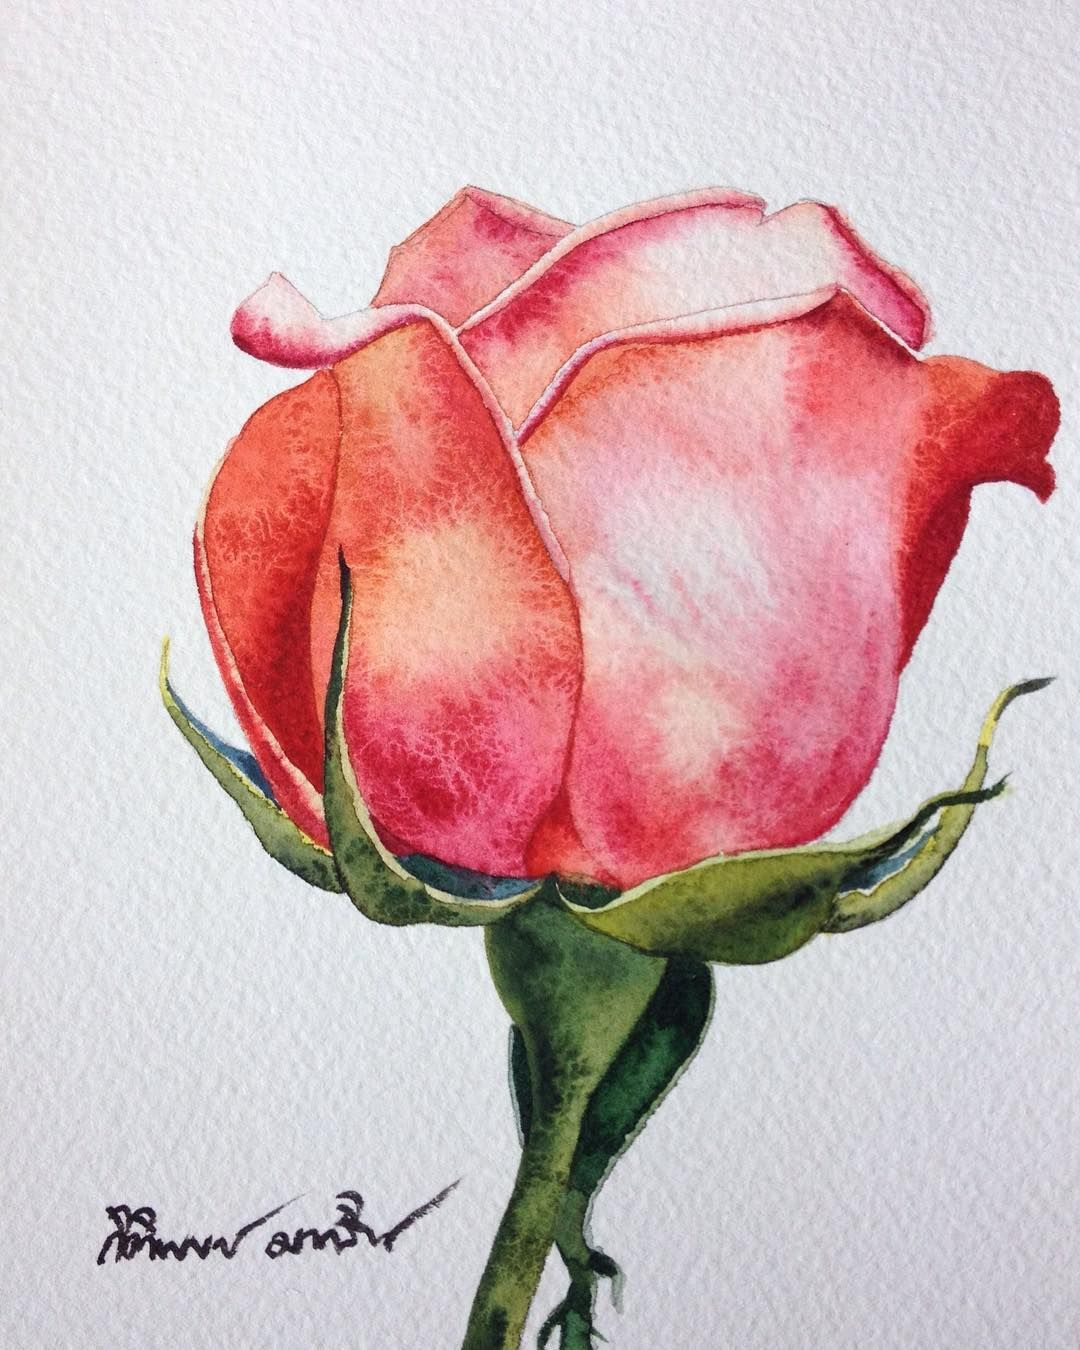 The Single Rose Flowers Roses Artists Art Aquarius Aquarelle Waterblog Watercolor Watercolorist Watercolorgalle Flower Drawing Flower Art Floral Art